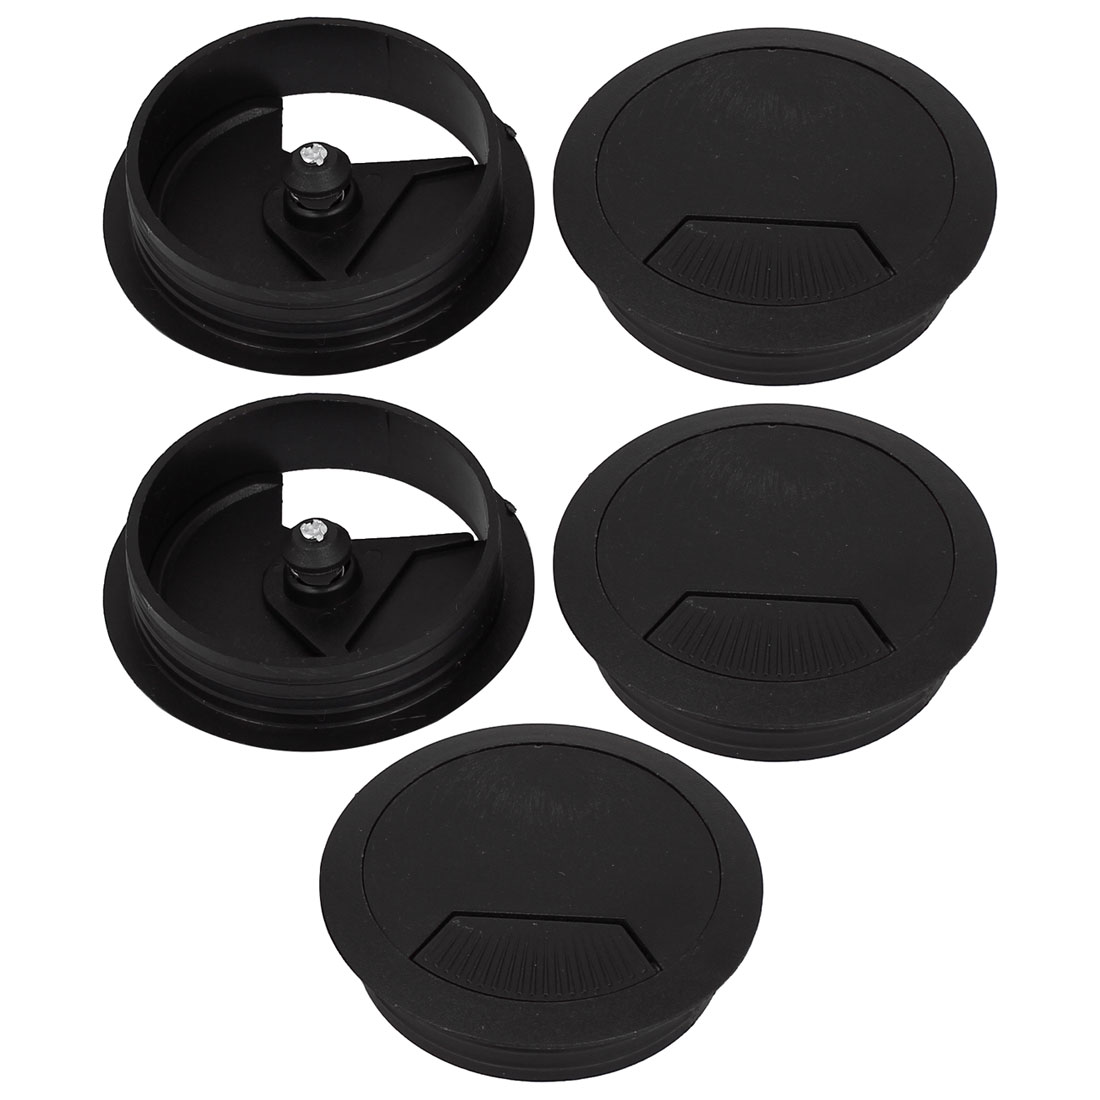 PC Desk Plastic 60mm Dia Wire Outlet Grommet Cable Hole Cover Black 5pcs